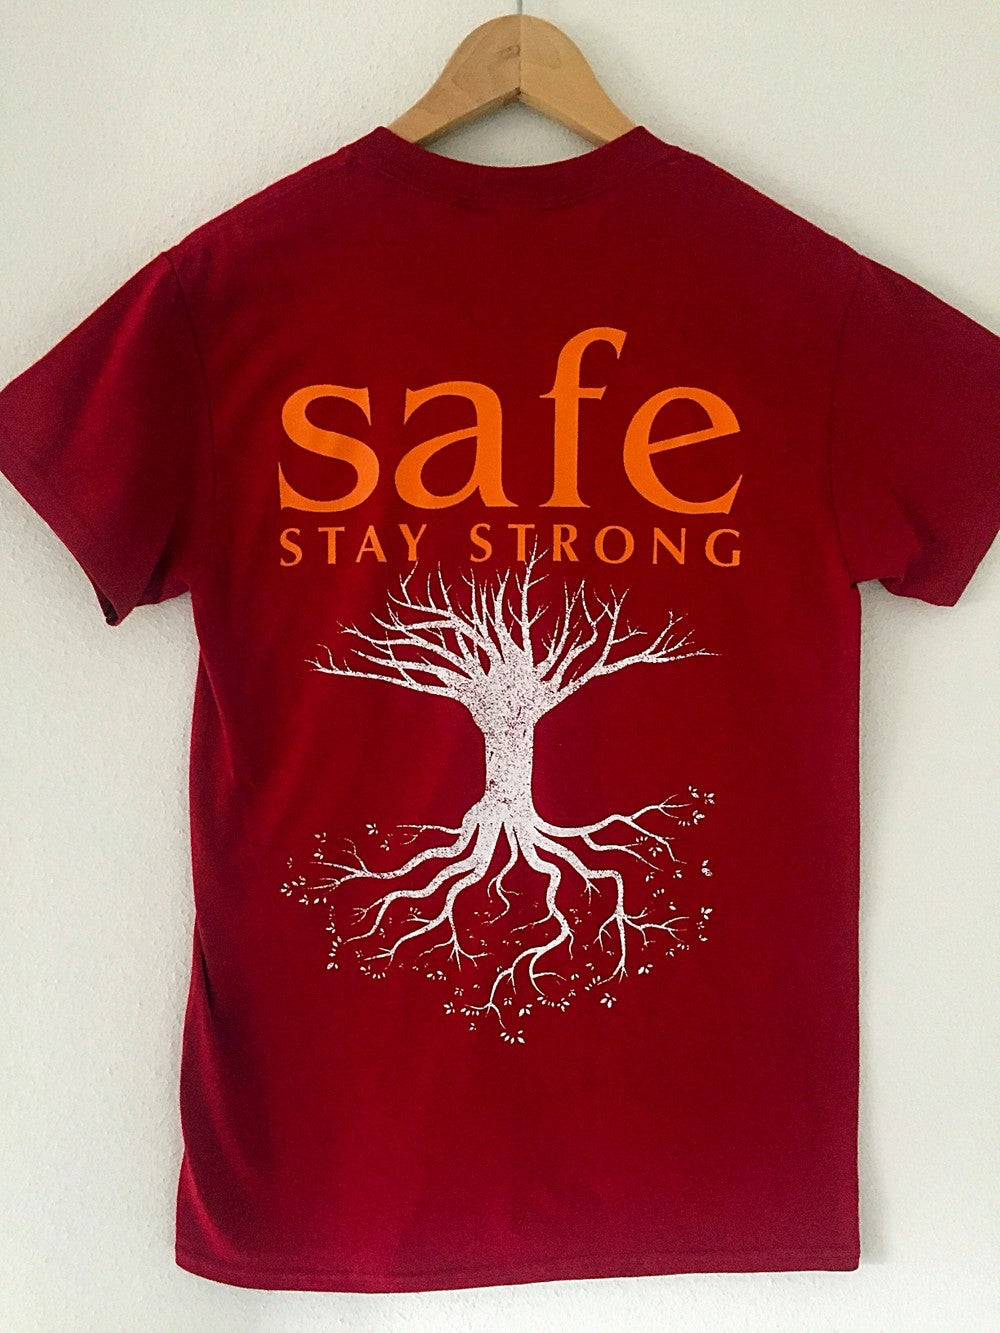 SAFE 'Stay Strong' T-Shirt